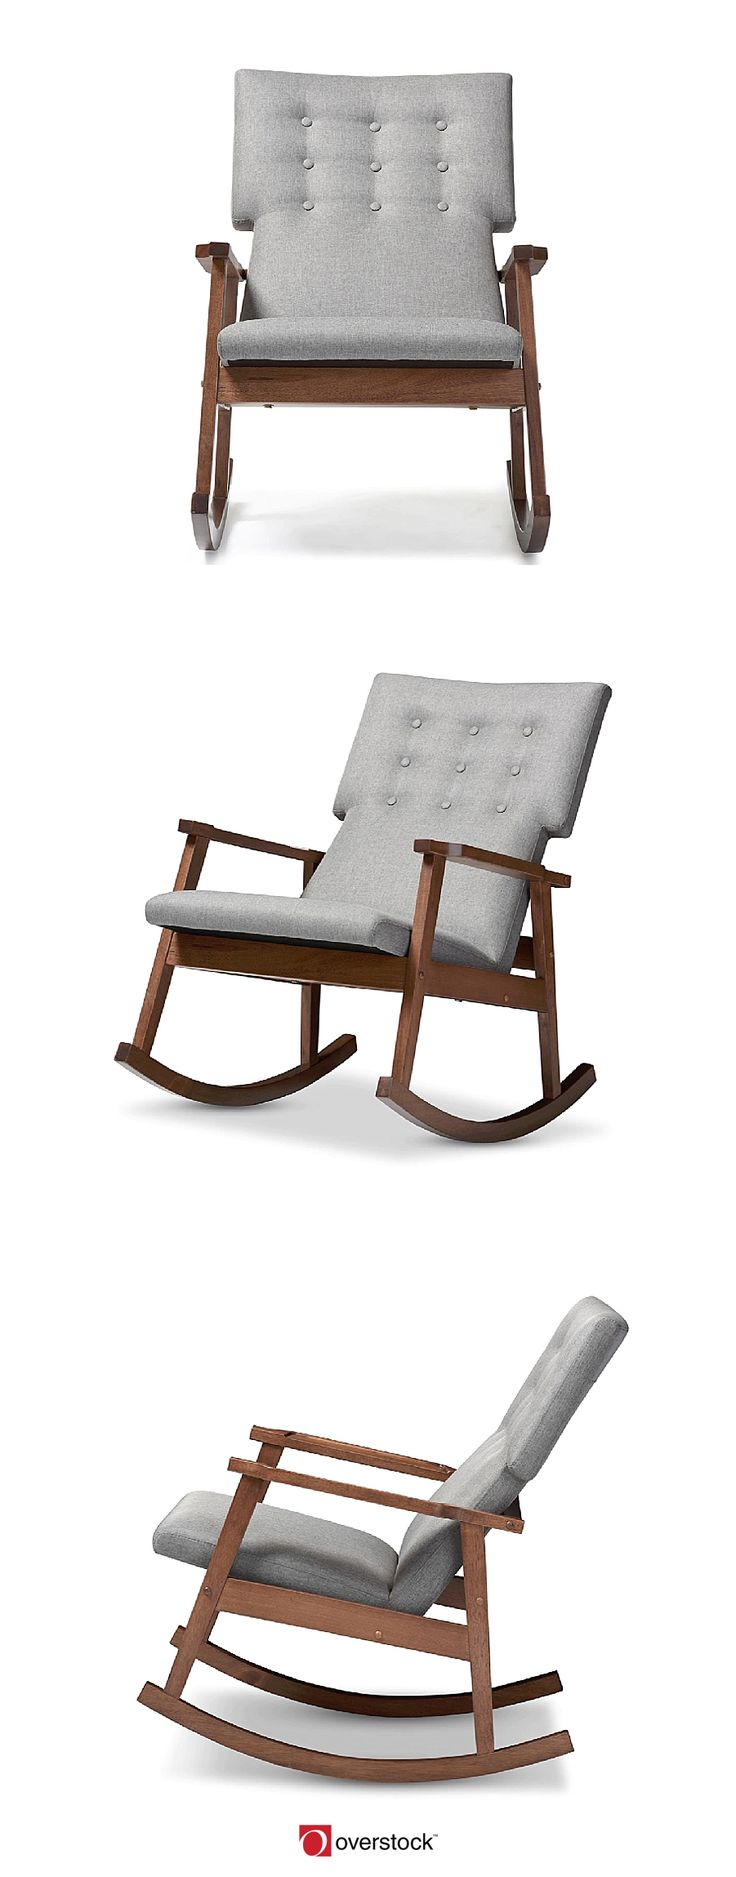 Featuring Scandinavian style with modern aesthetic, the Agatha rocking chair features upholstered high back cushioned seat with button tufting design. The rocking base of the chair is constructed of solid rubberwood in dark walnut finishing for a truly retro feel. The sculpted armrests provide strong support for extra comfort after a long day. This piece, looks smart, modern, but comfortable can be a good rocking chair for nursery during middle of the night feedings and yet a pretty piece of…